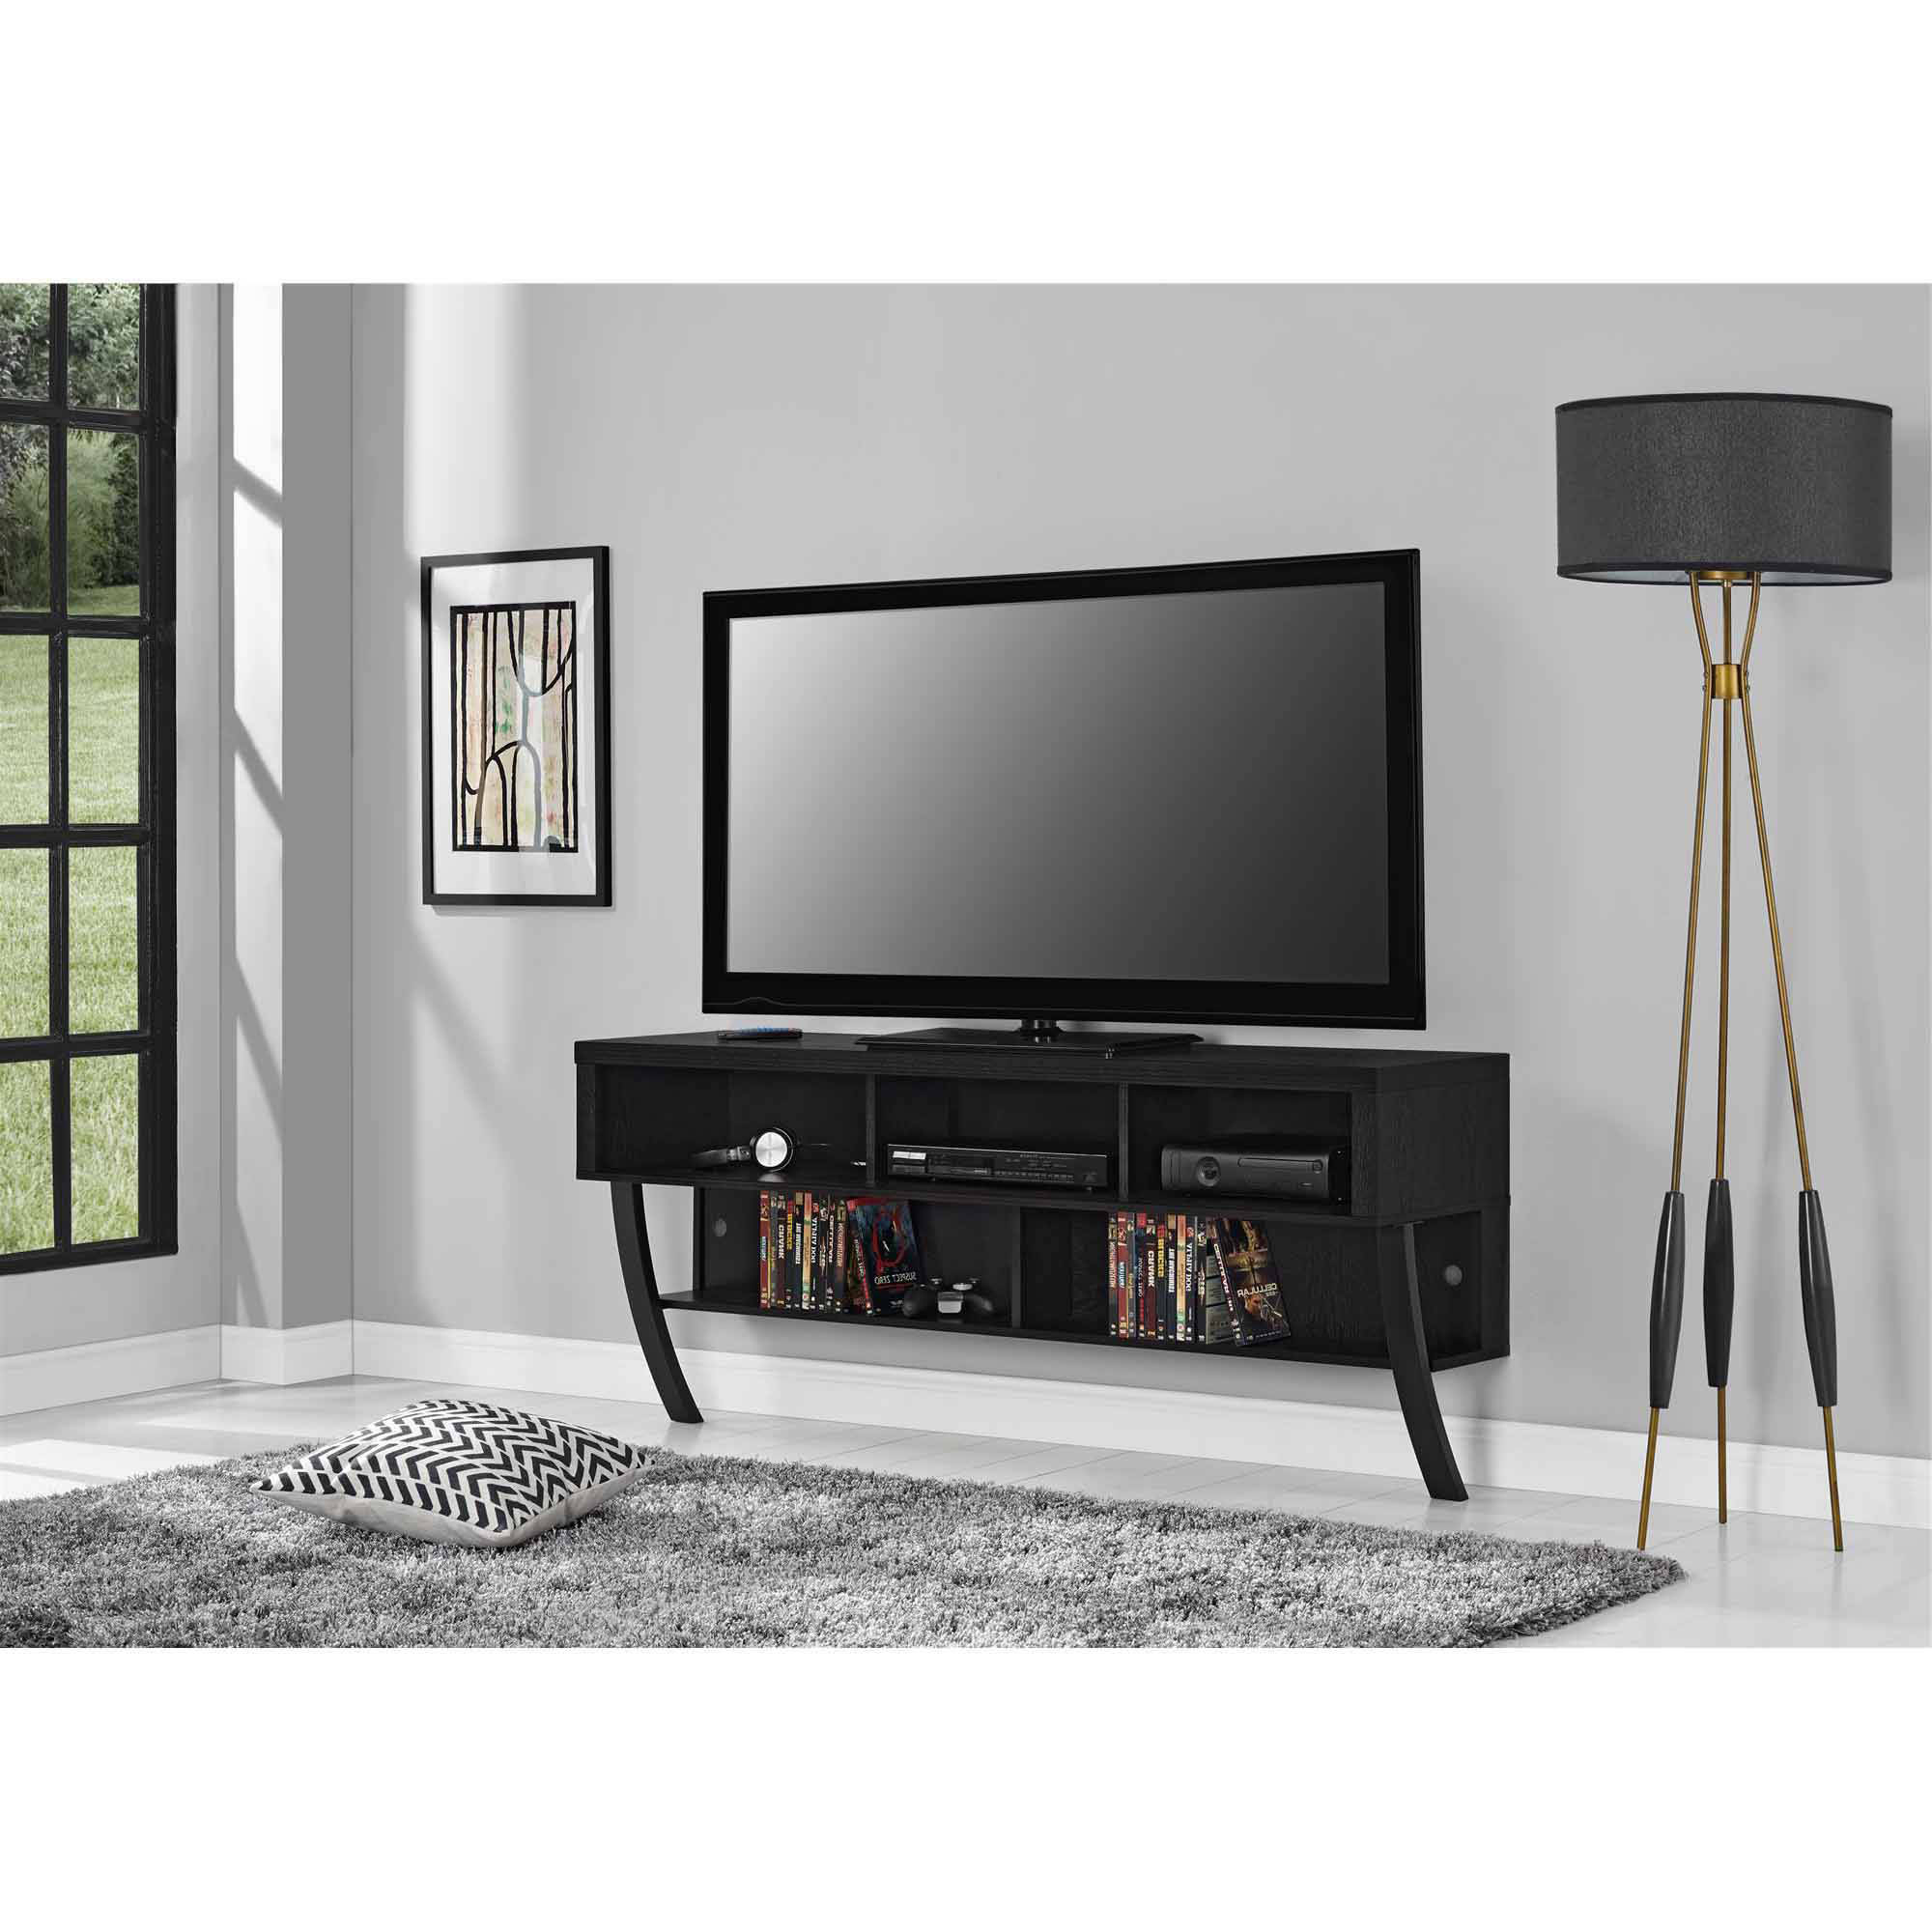 "Preferred Wall Mounted Tv Cabinets For Flat Screens With Doors With Regard To Altra Asher Wall Mounted 65"" Tv Stand, Black Oak – Walmart (View 8 of 20)"